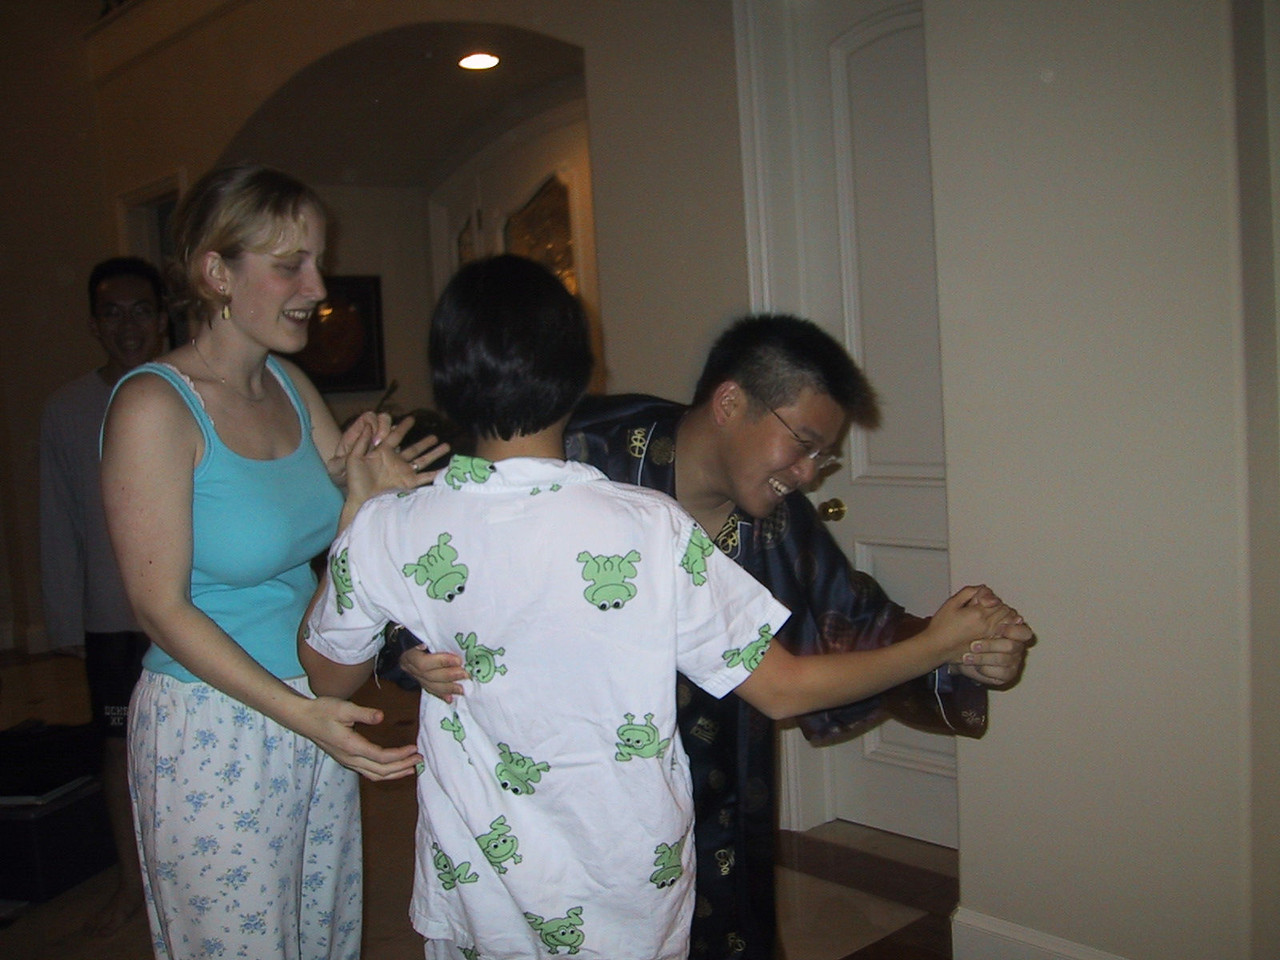 Sylvia tries to cut in, but Kenji tries to run with AnnMarie